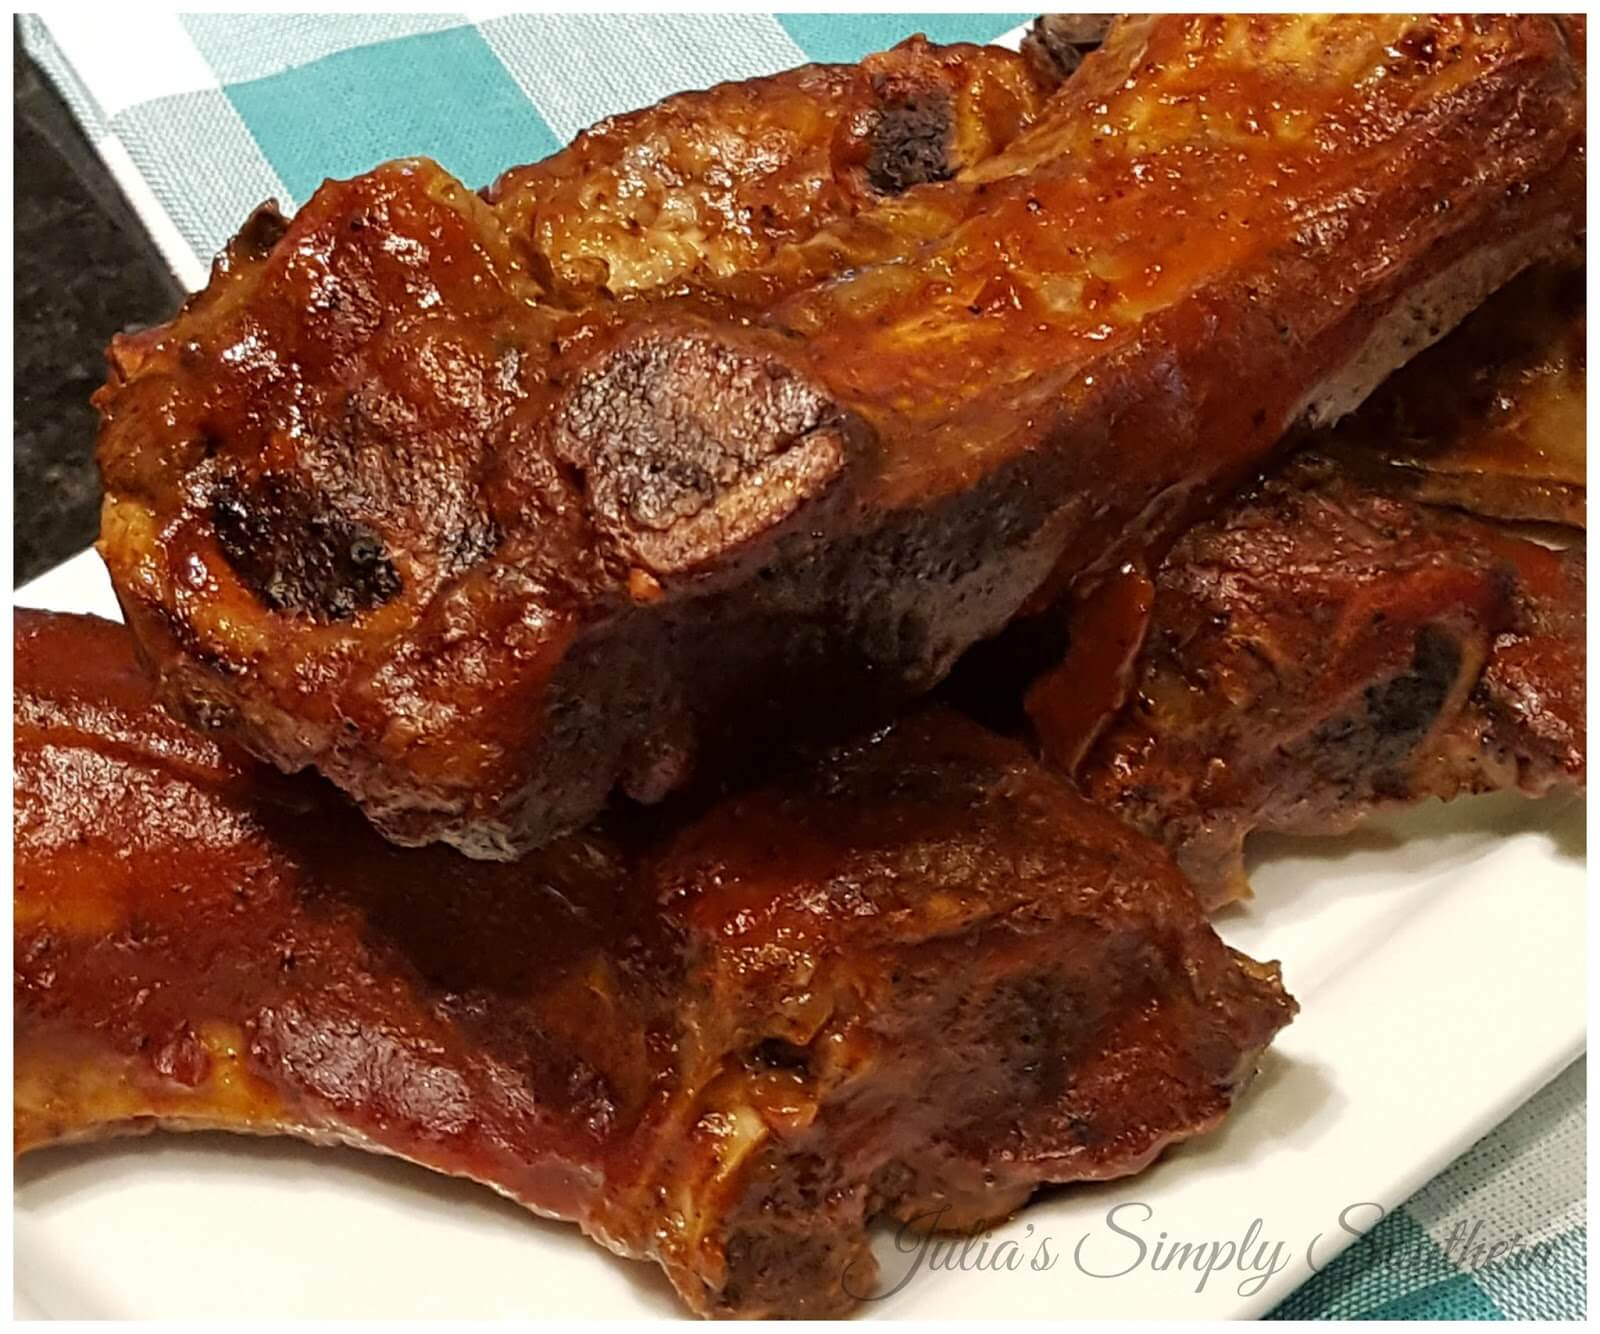 BBQ Beef Ribs slow roasted in the oven